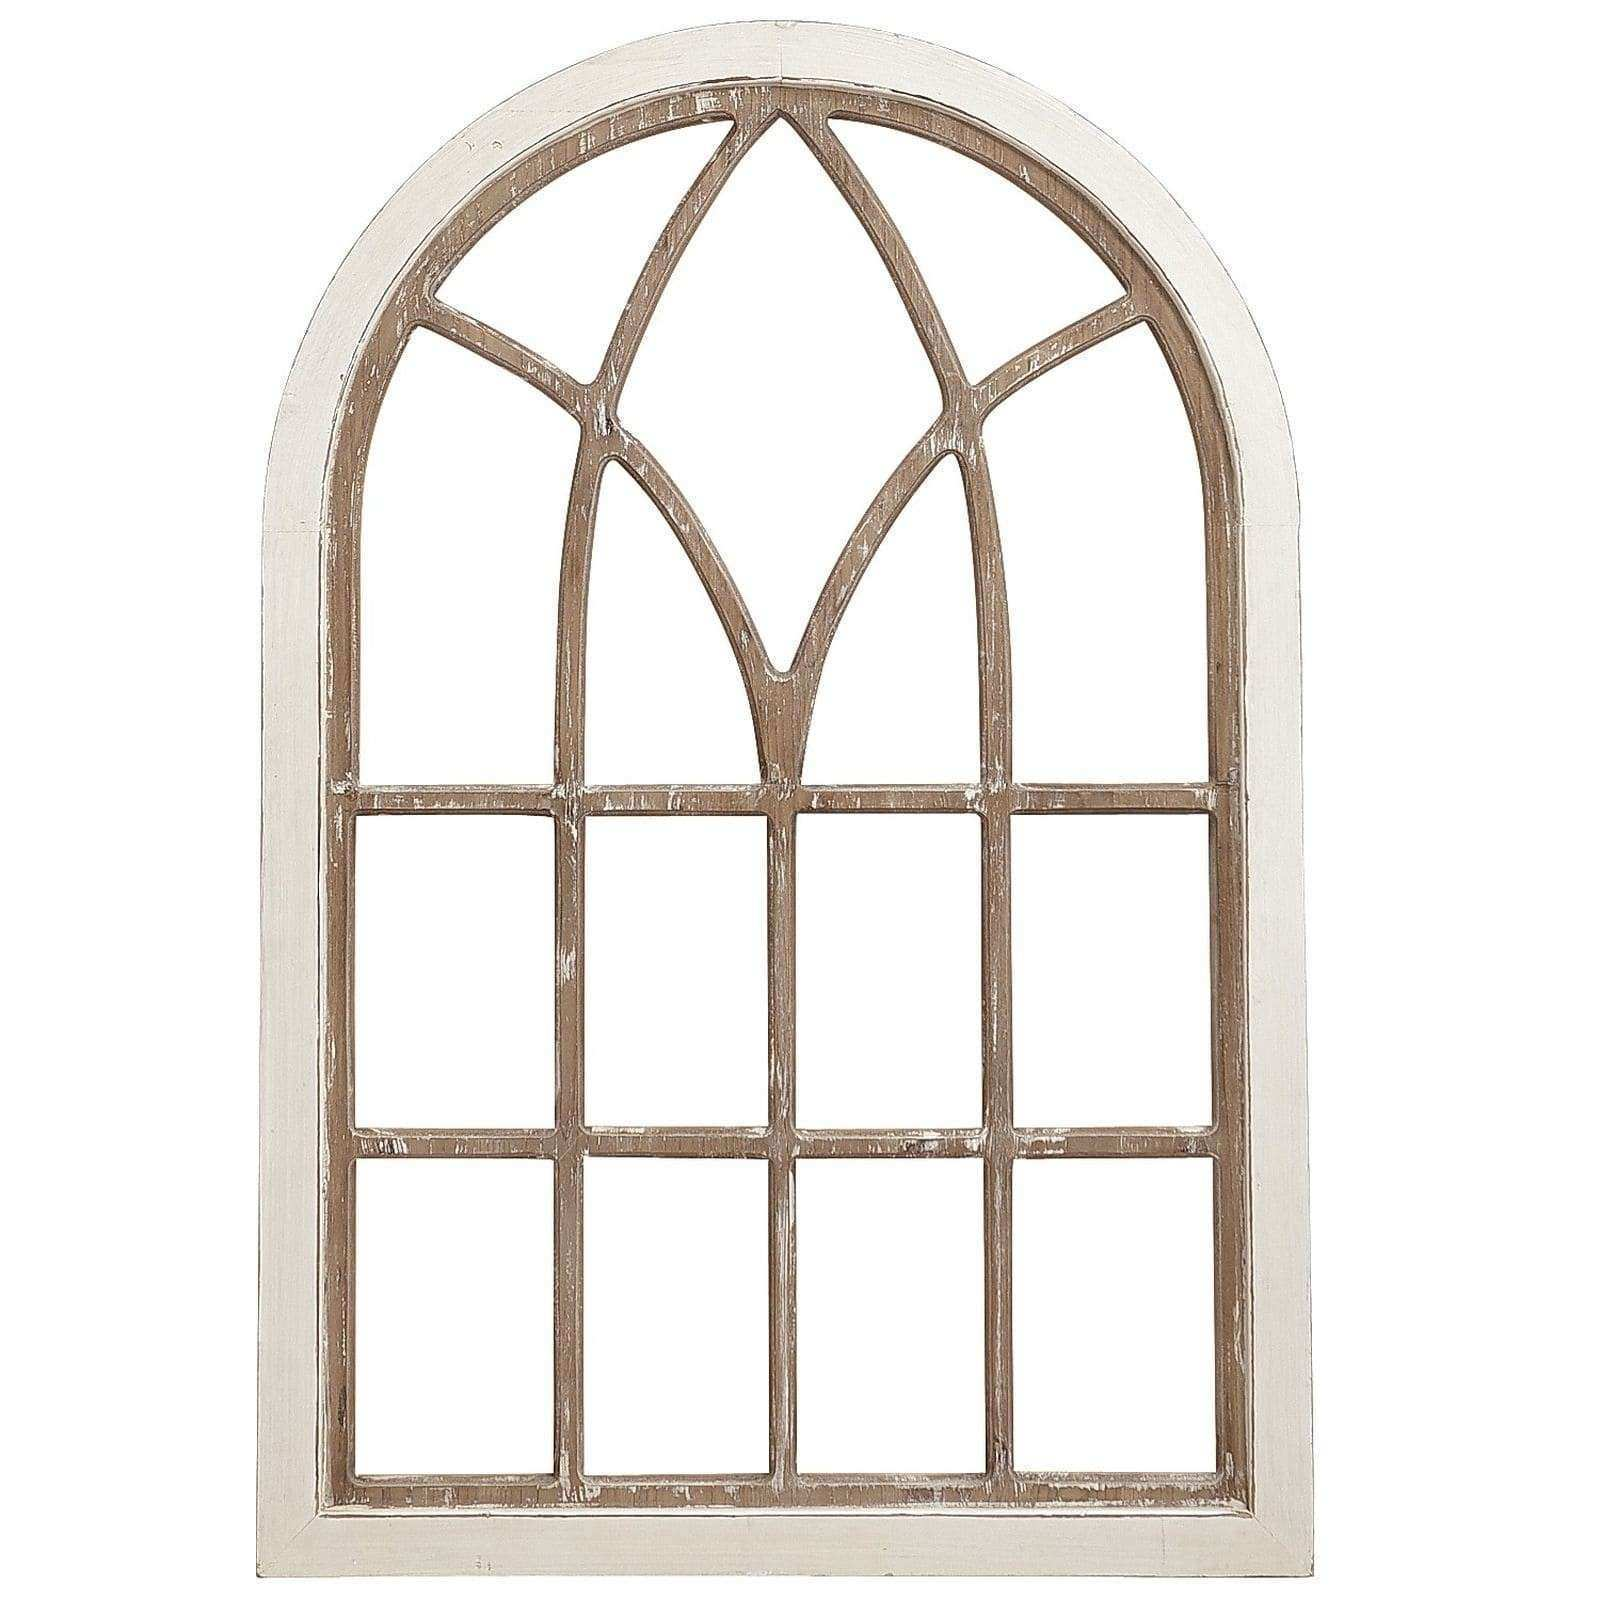 Charming Pier One Imports Wall Decor Unique Ivory Arch Wall Decor